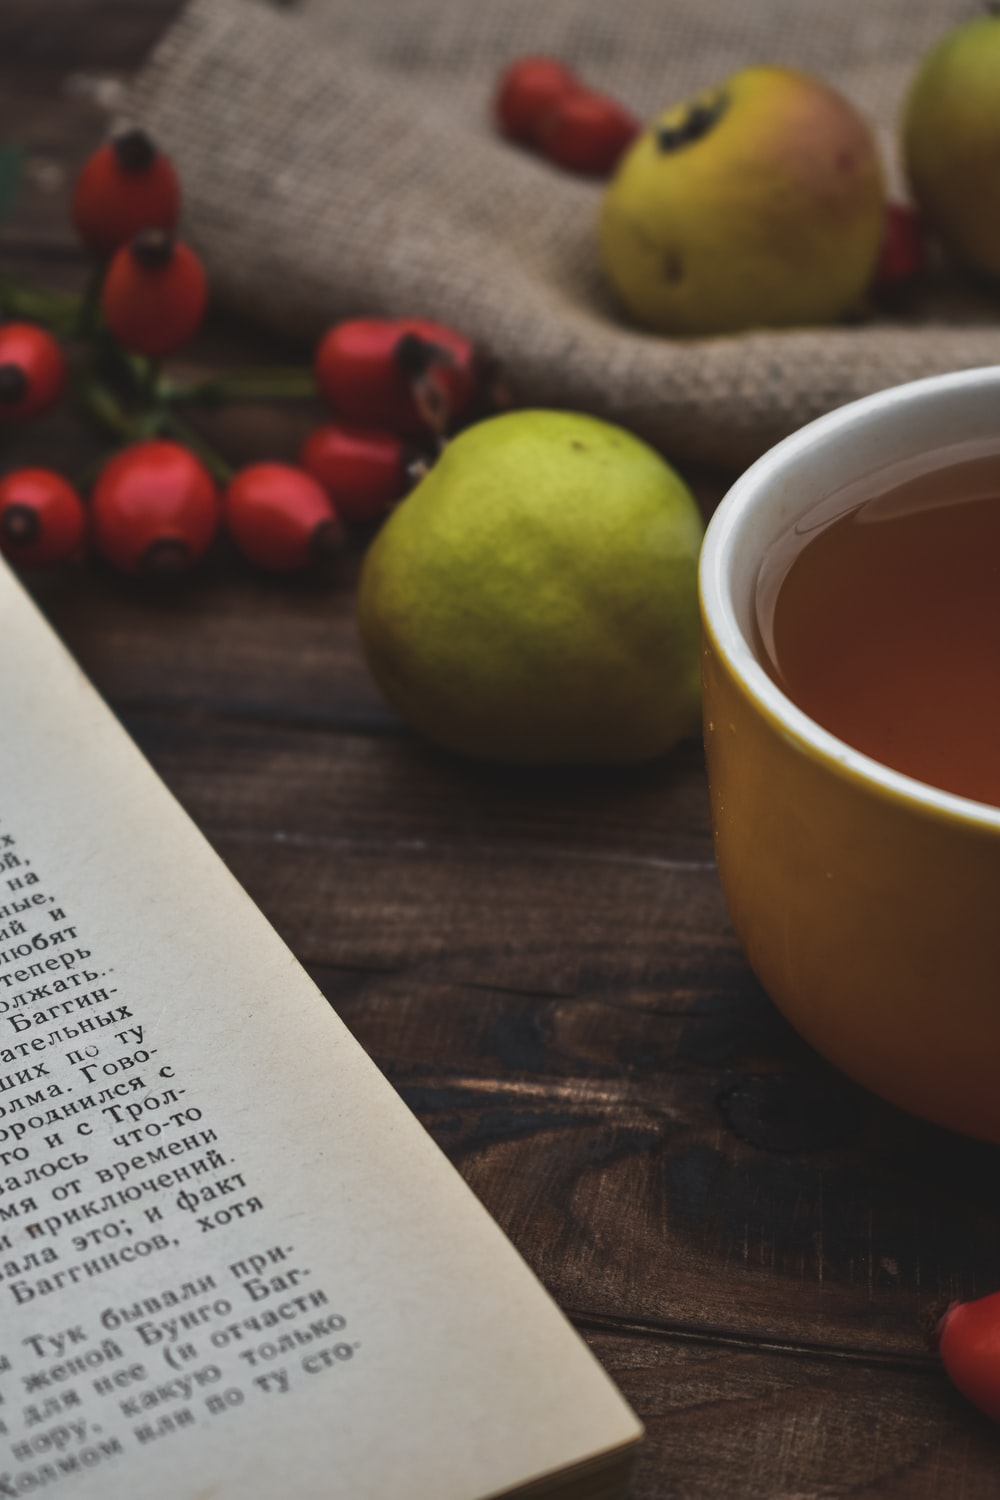 filled cup near fruits and book